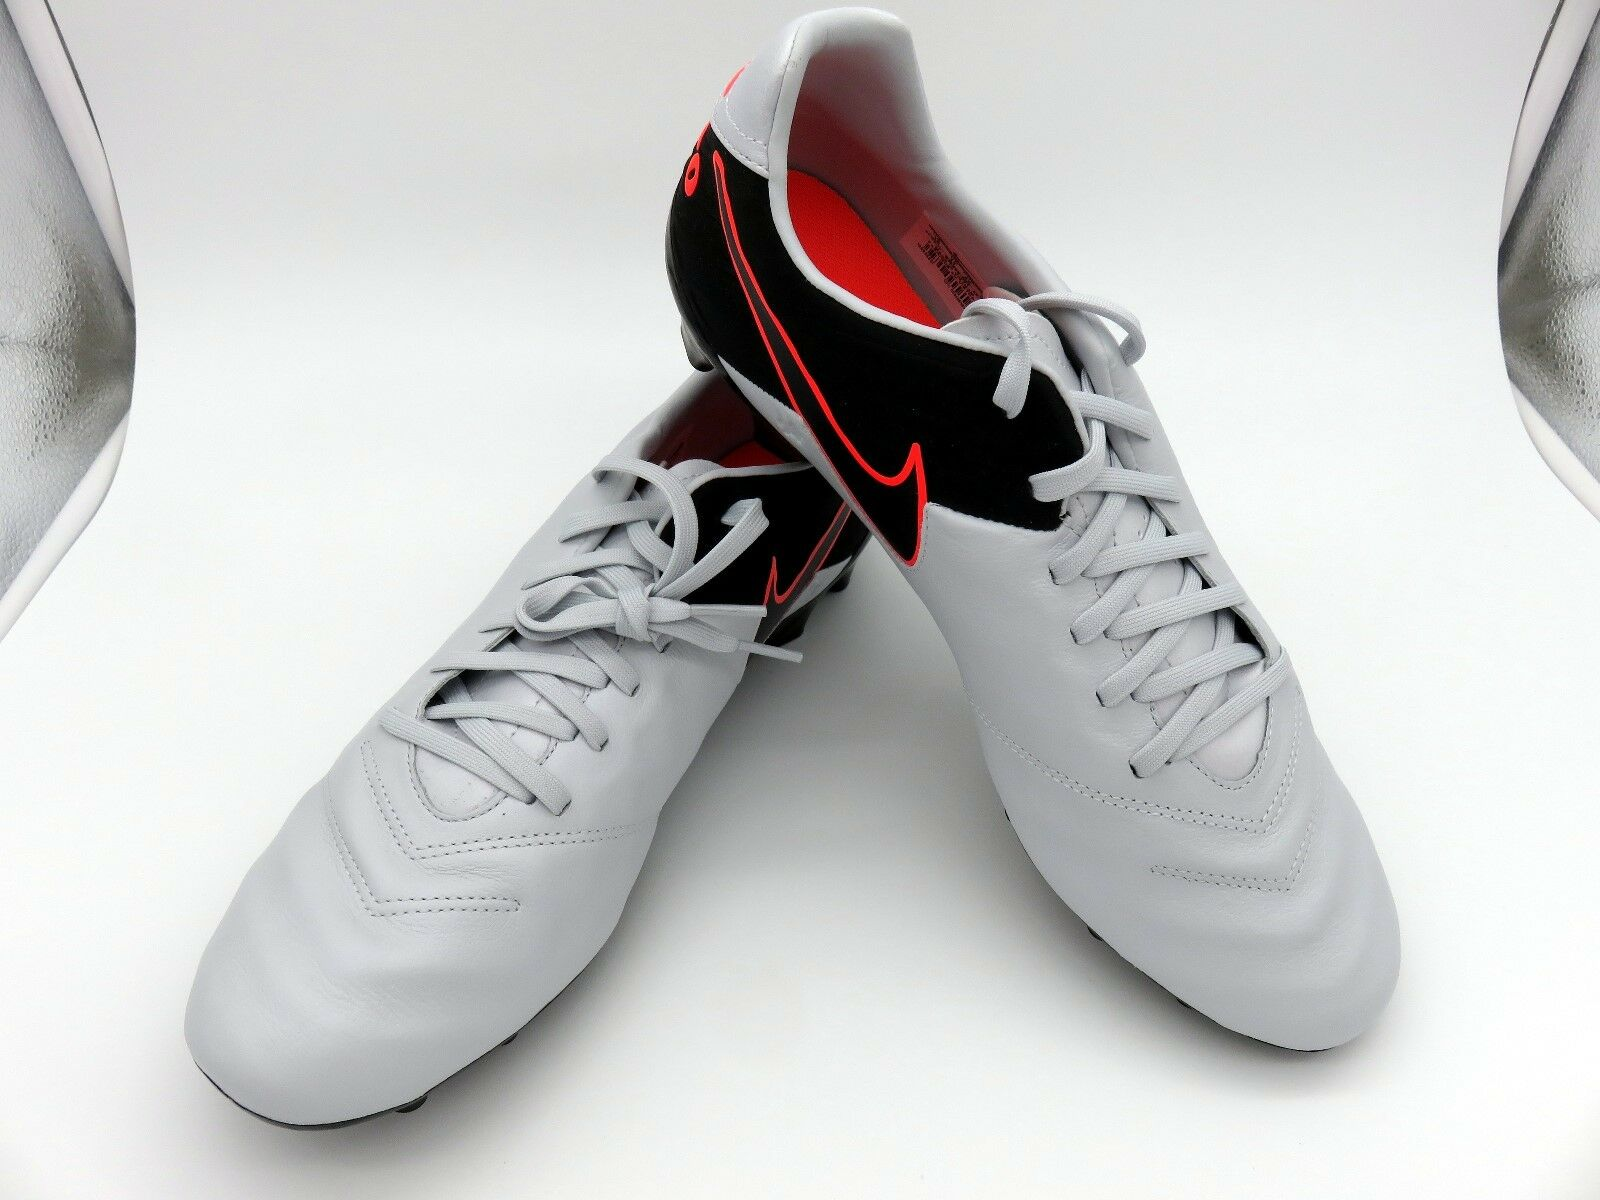 Special limited time Nike Tiempo Mystic V FG Men's Soccer Cleat  819236-001 Platinum Black Comfortable